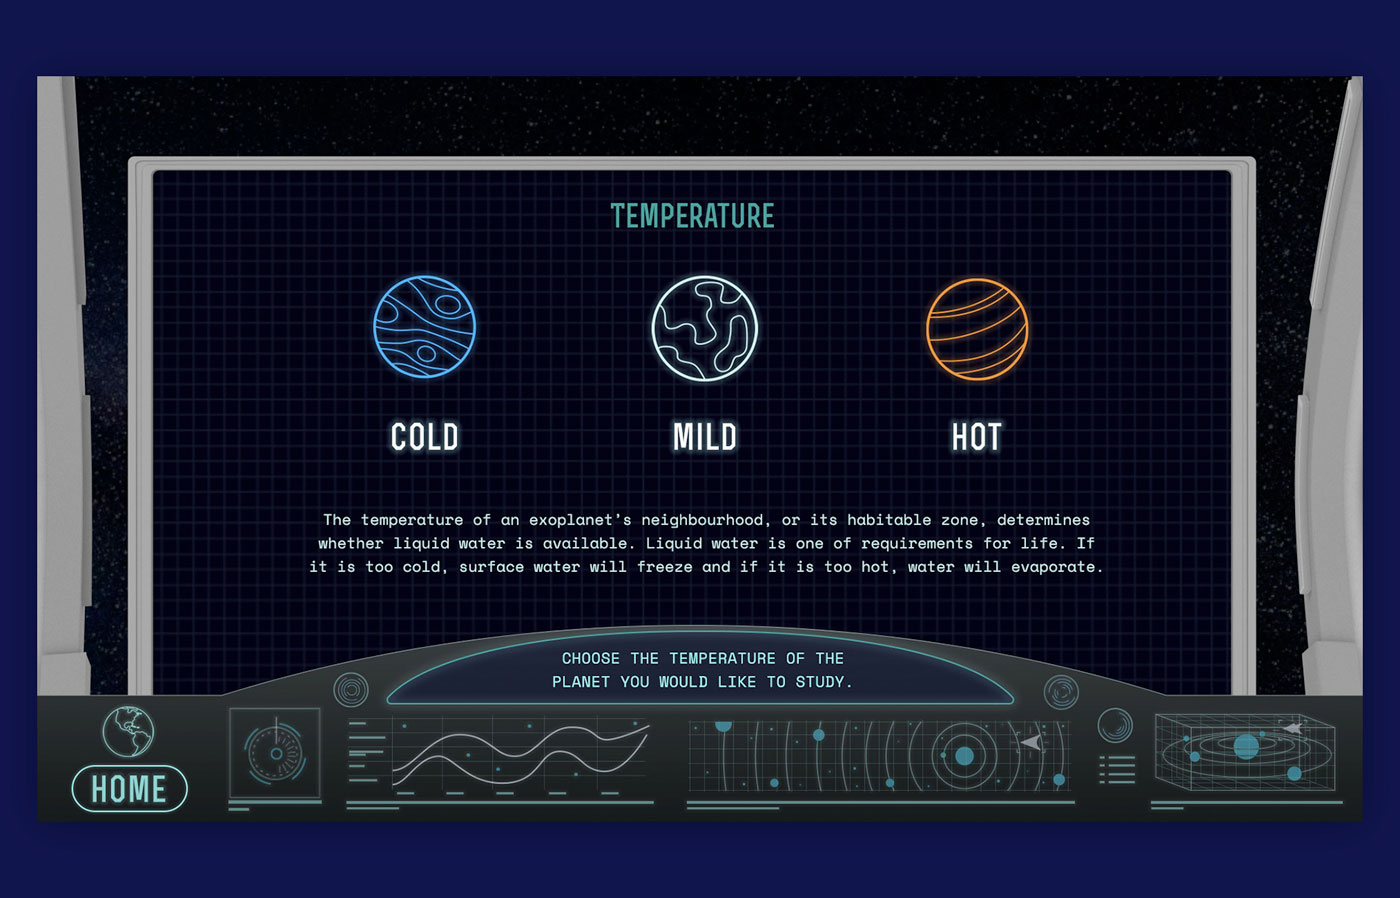 A UI design set up so it looks like you are sitting behind the dashboard of a space ship and you are exploring space. The screen give you options to choose between three possible planet destinations.